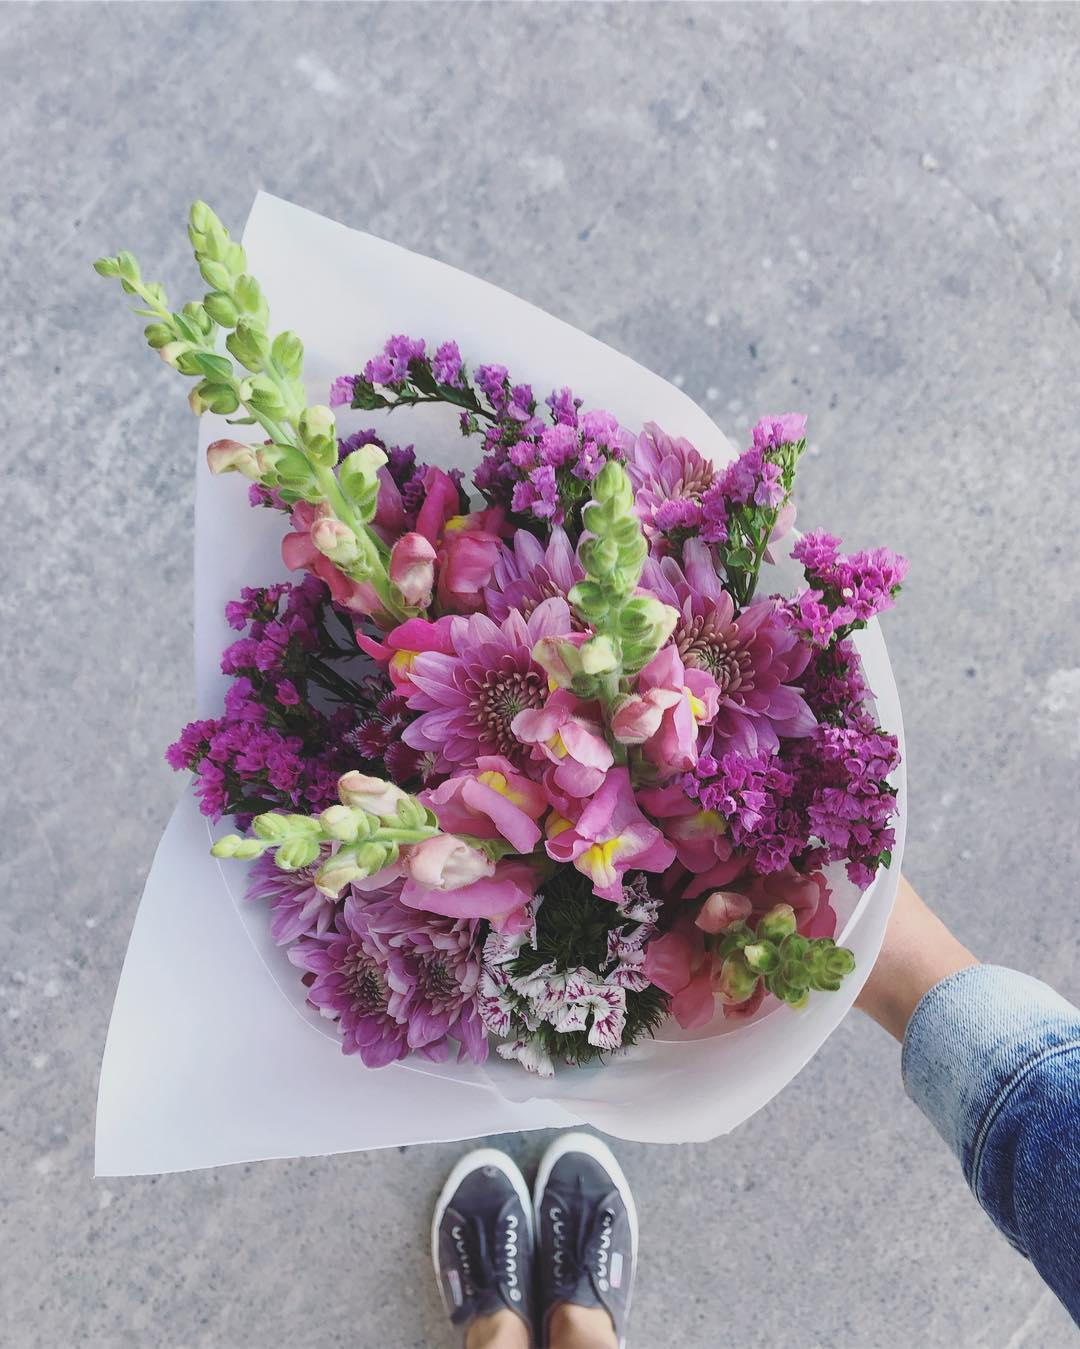 Today's Posy is pretty snapdragons with statice, sprays and sweet William. Order online before 12:30pm for delivery today. . . . . #Petalandpost#capetown#capetownflorist#lovezabuyza#localzadesign#lovelocalza#hellopretty#capetownmag#cylcollective #capetownlikes#supportlocal#posylove#wedding#local#botanical#theprettyblog#gardenday#capetowninfo#handmadeincapetown#madeinsouthafrica#lokalza#durbanville#proudlysouthafrican